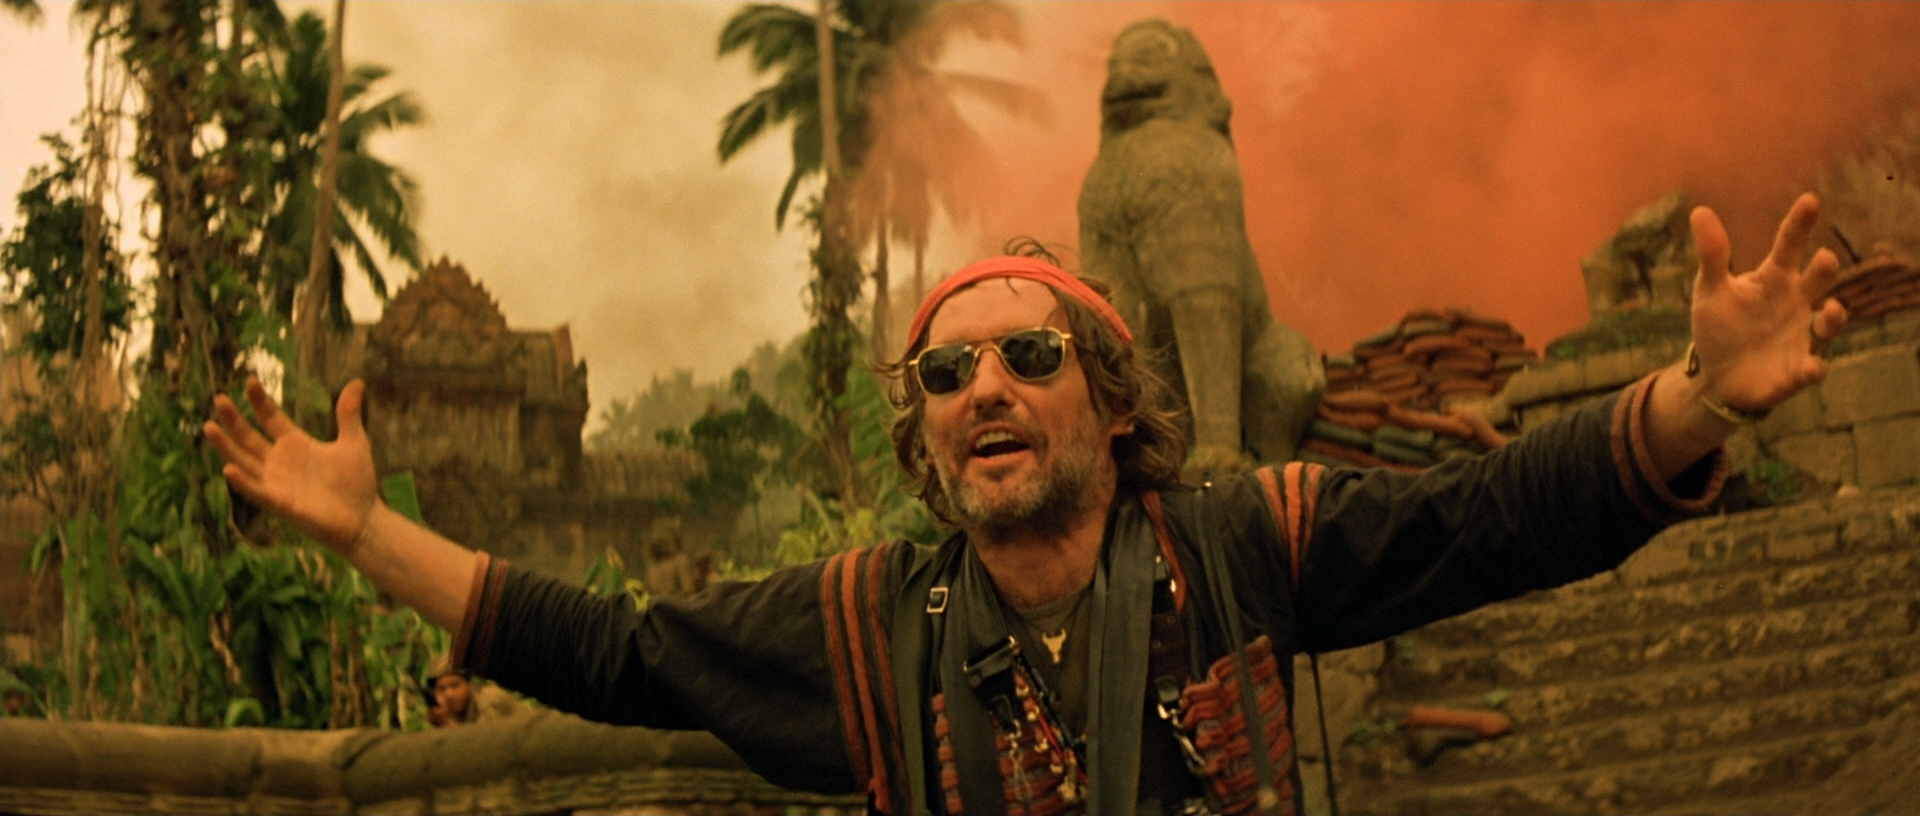 Apocalypse Now Movie HD Wallpaper Movies Wallpapers 1920x816